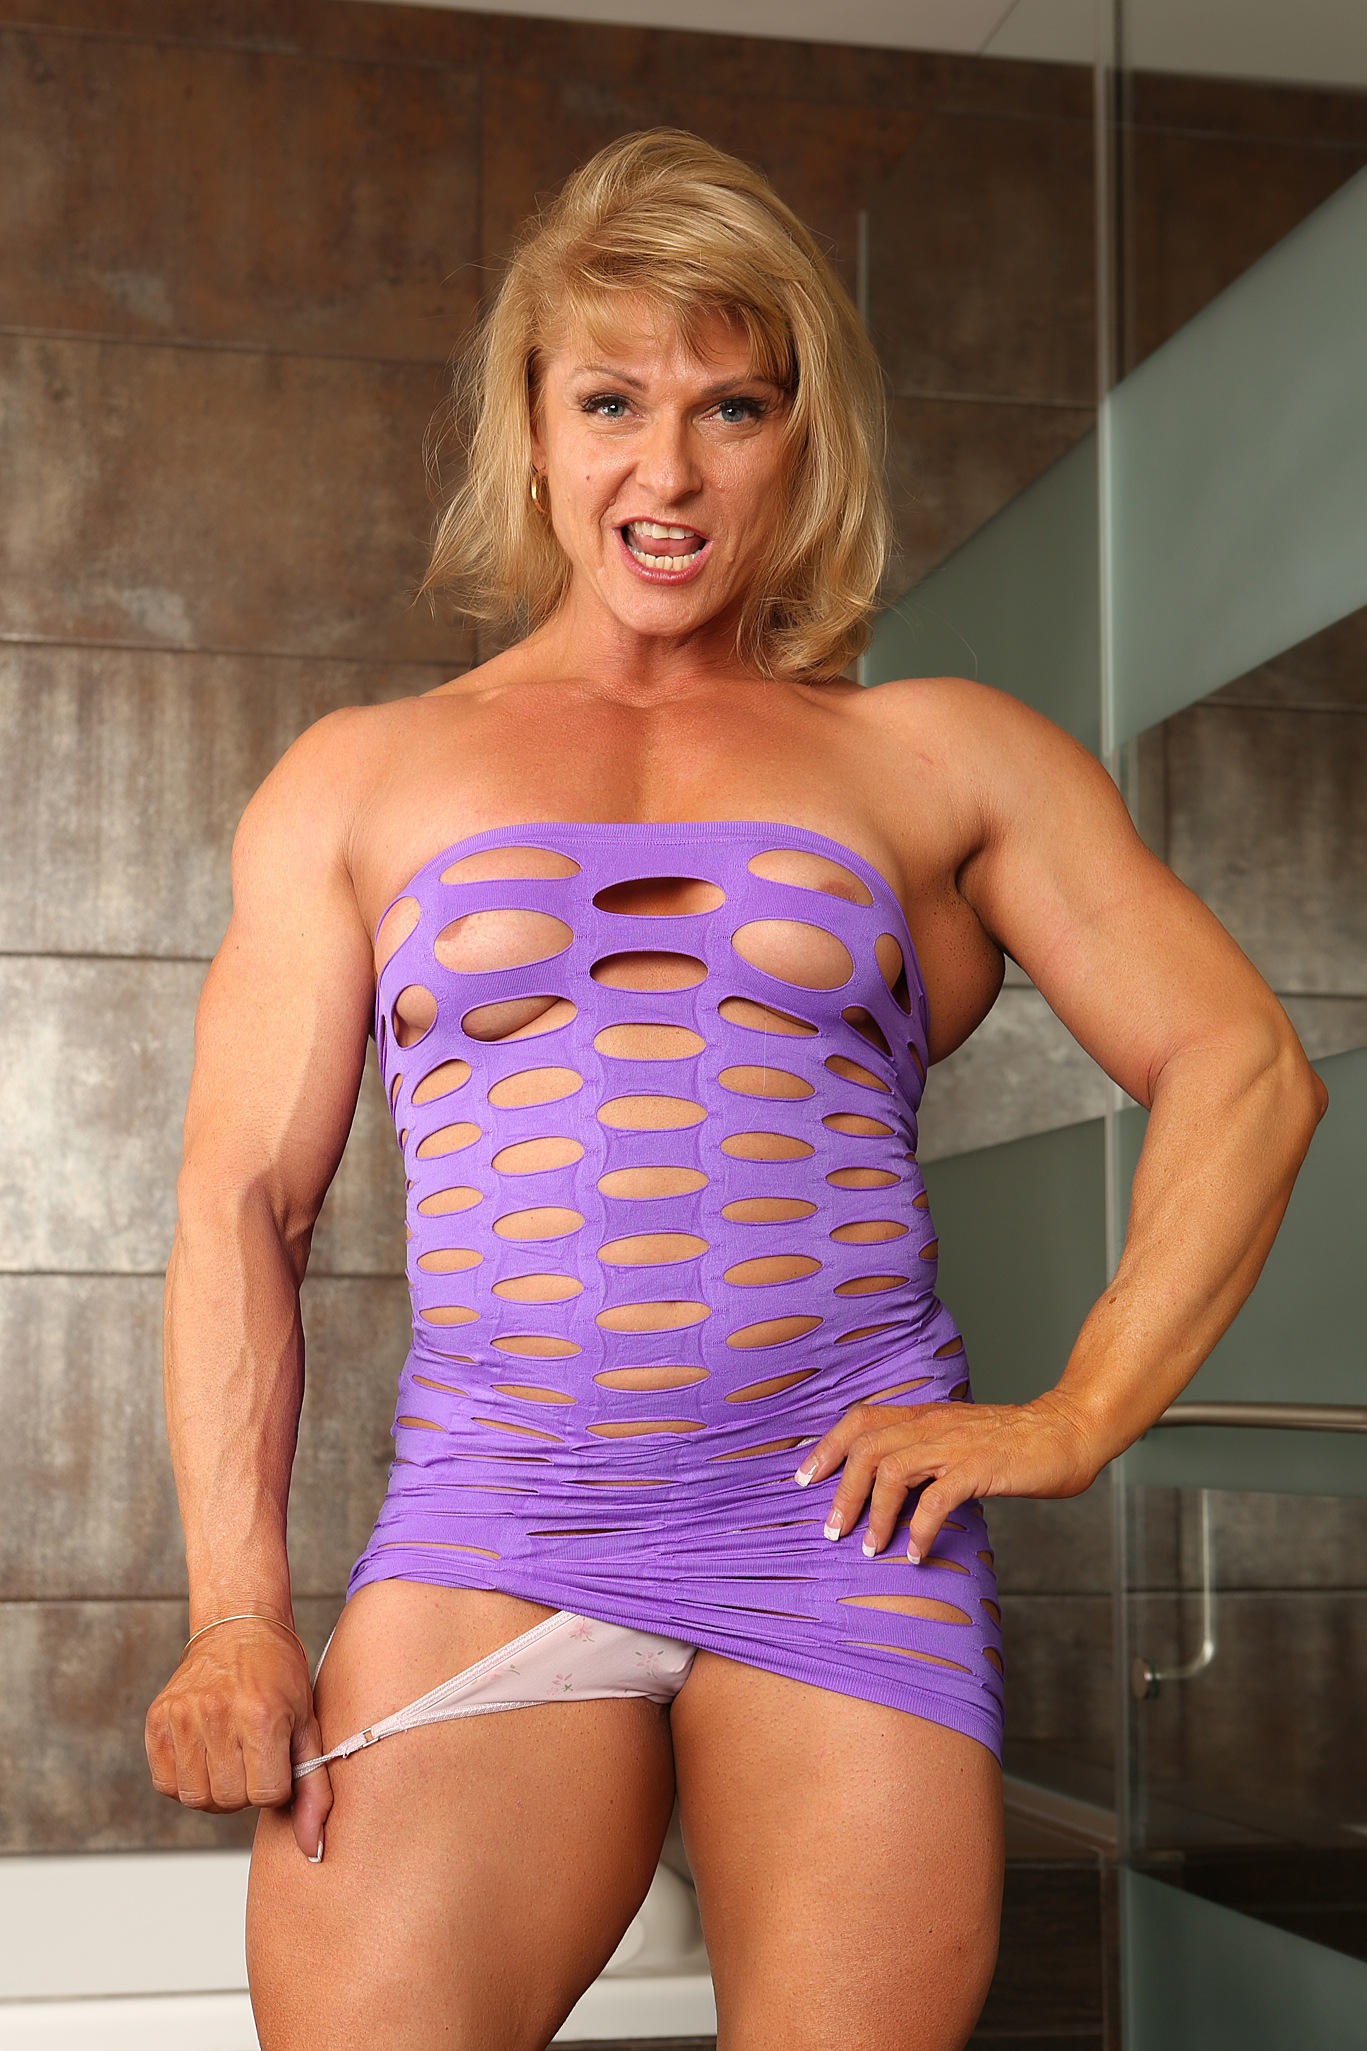 Abby marie fitness models shows her hardbody 7